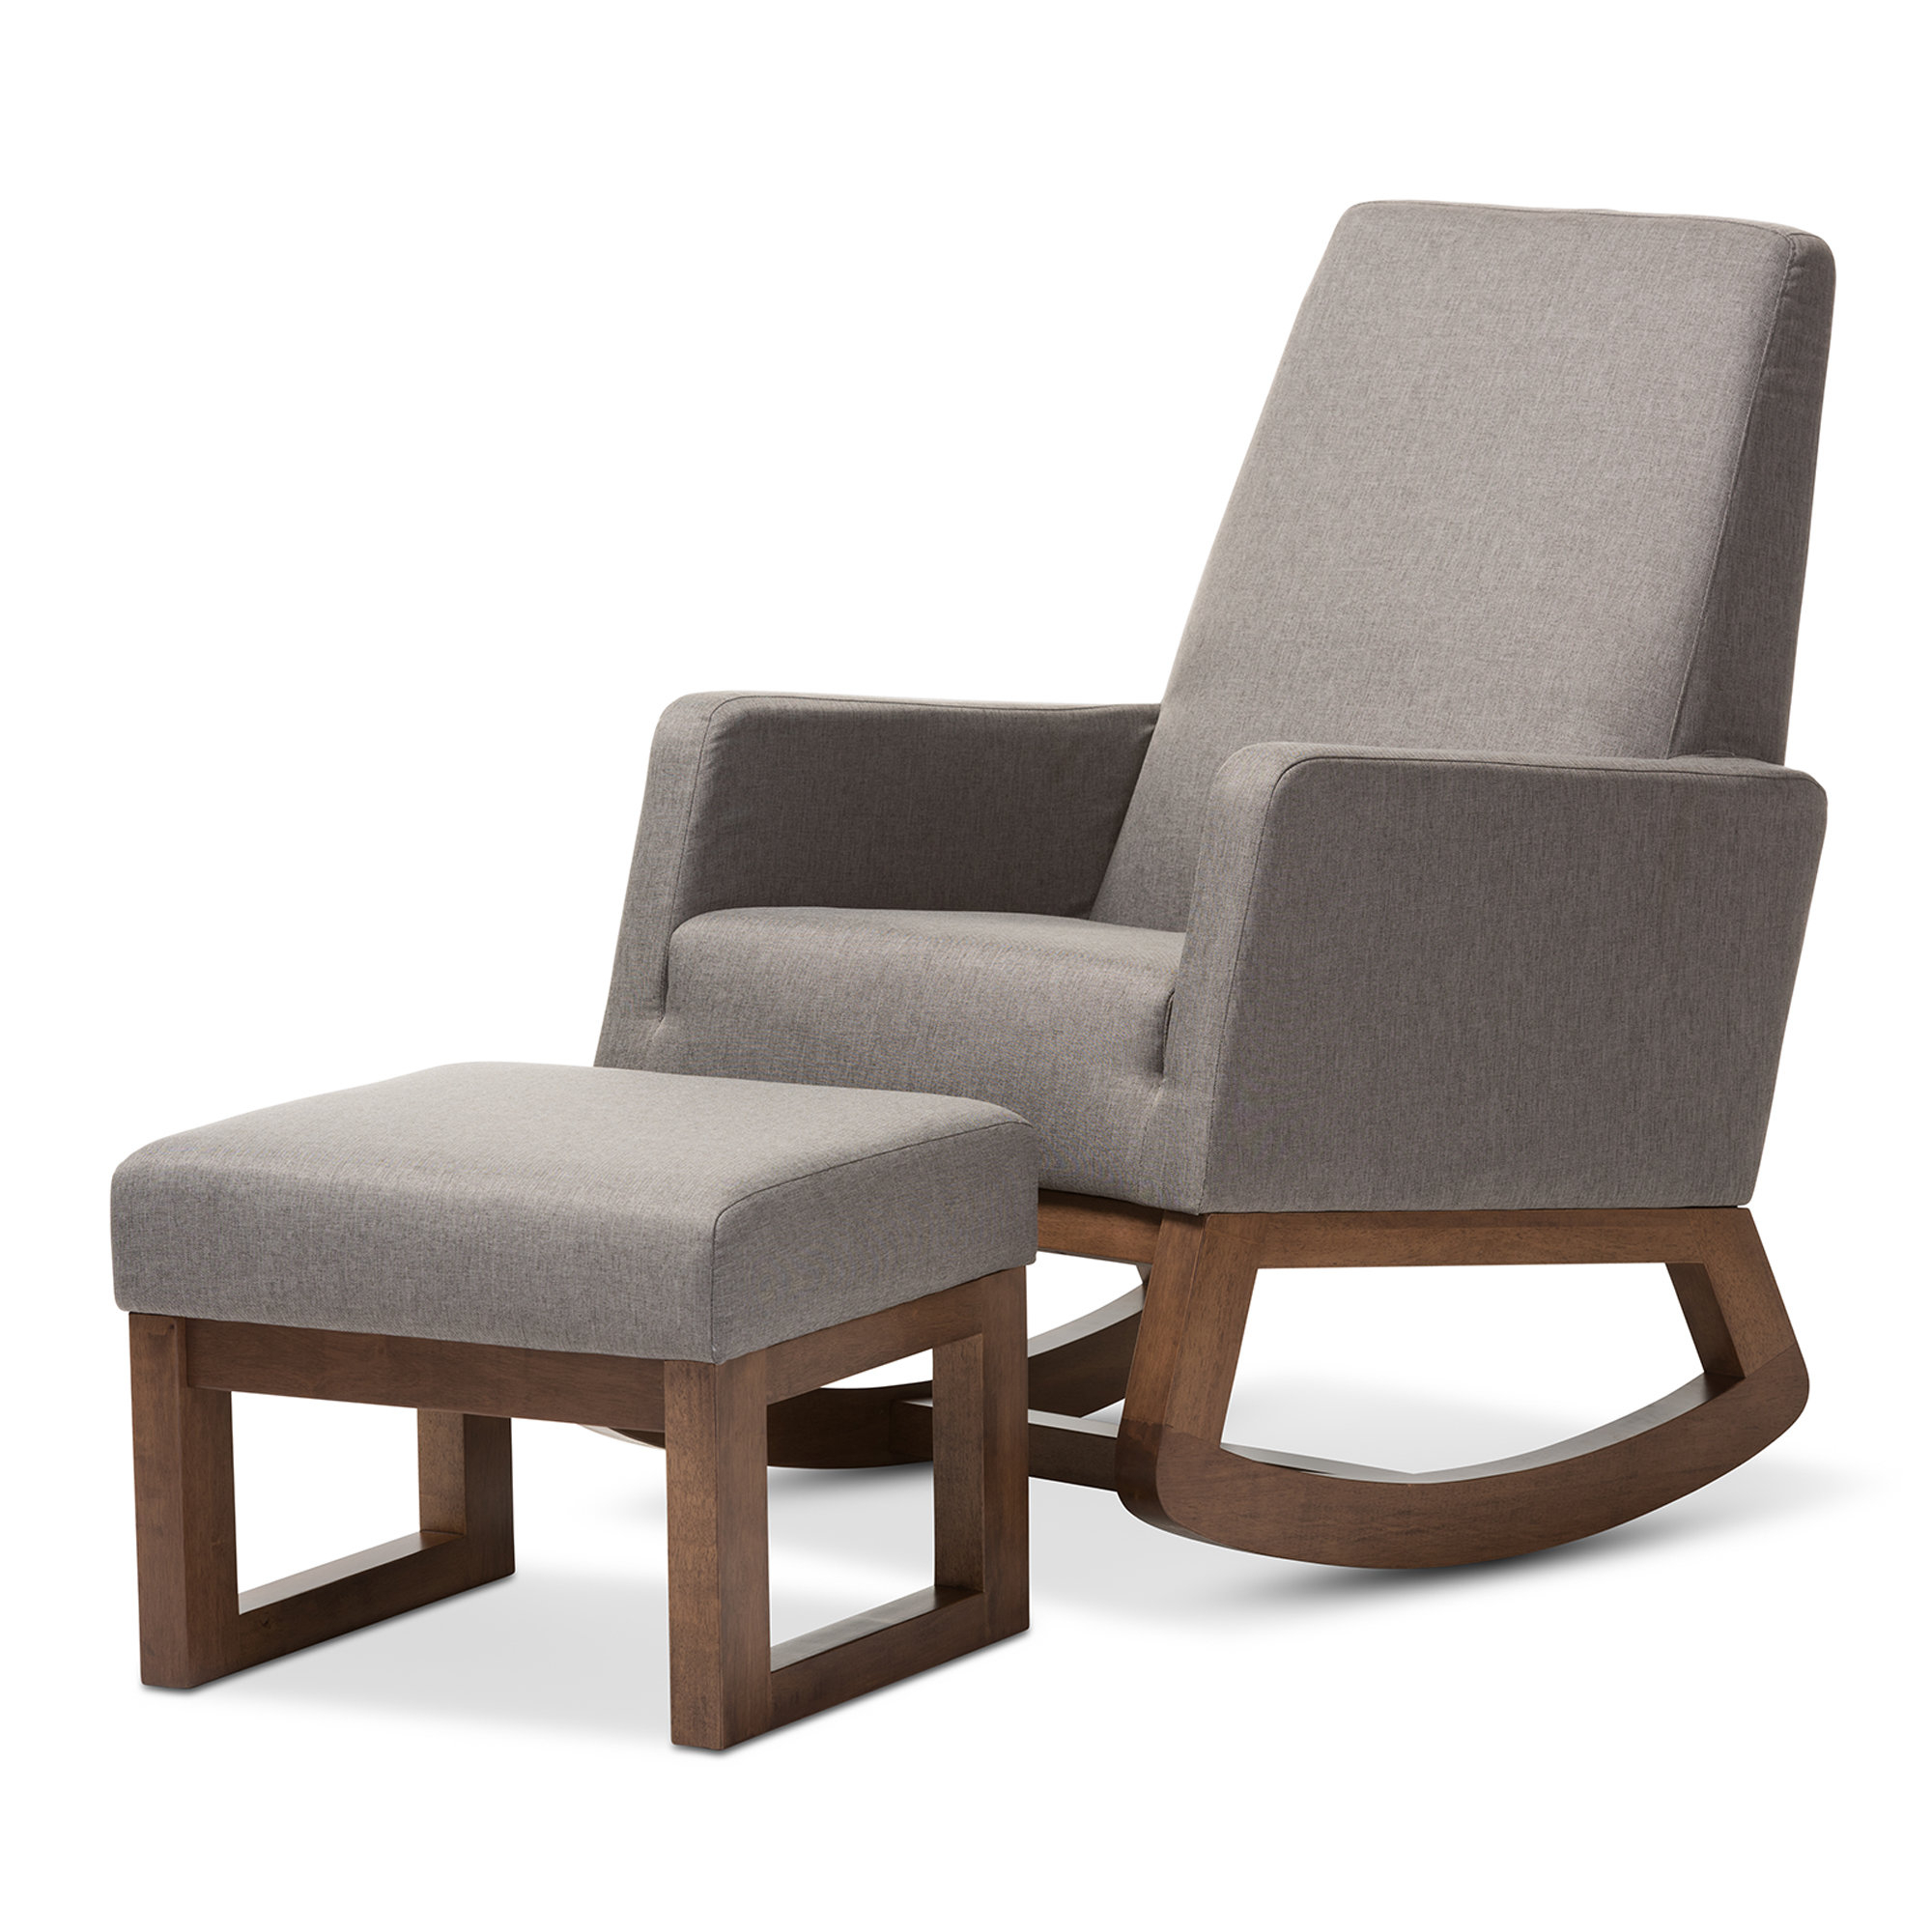 Modern & Contemporary Upholstered Rocking Chairs | Allmodern For Mid Century Fabric Rocking Chairs (#16 of 20)